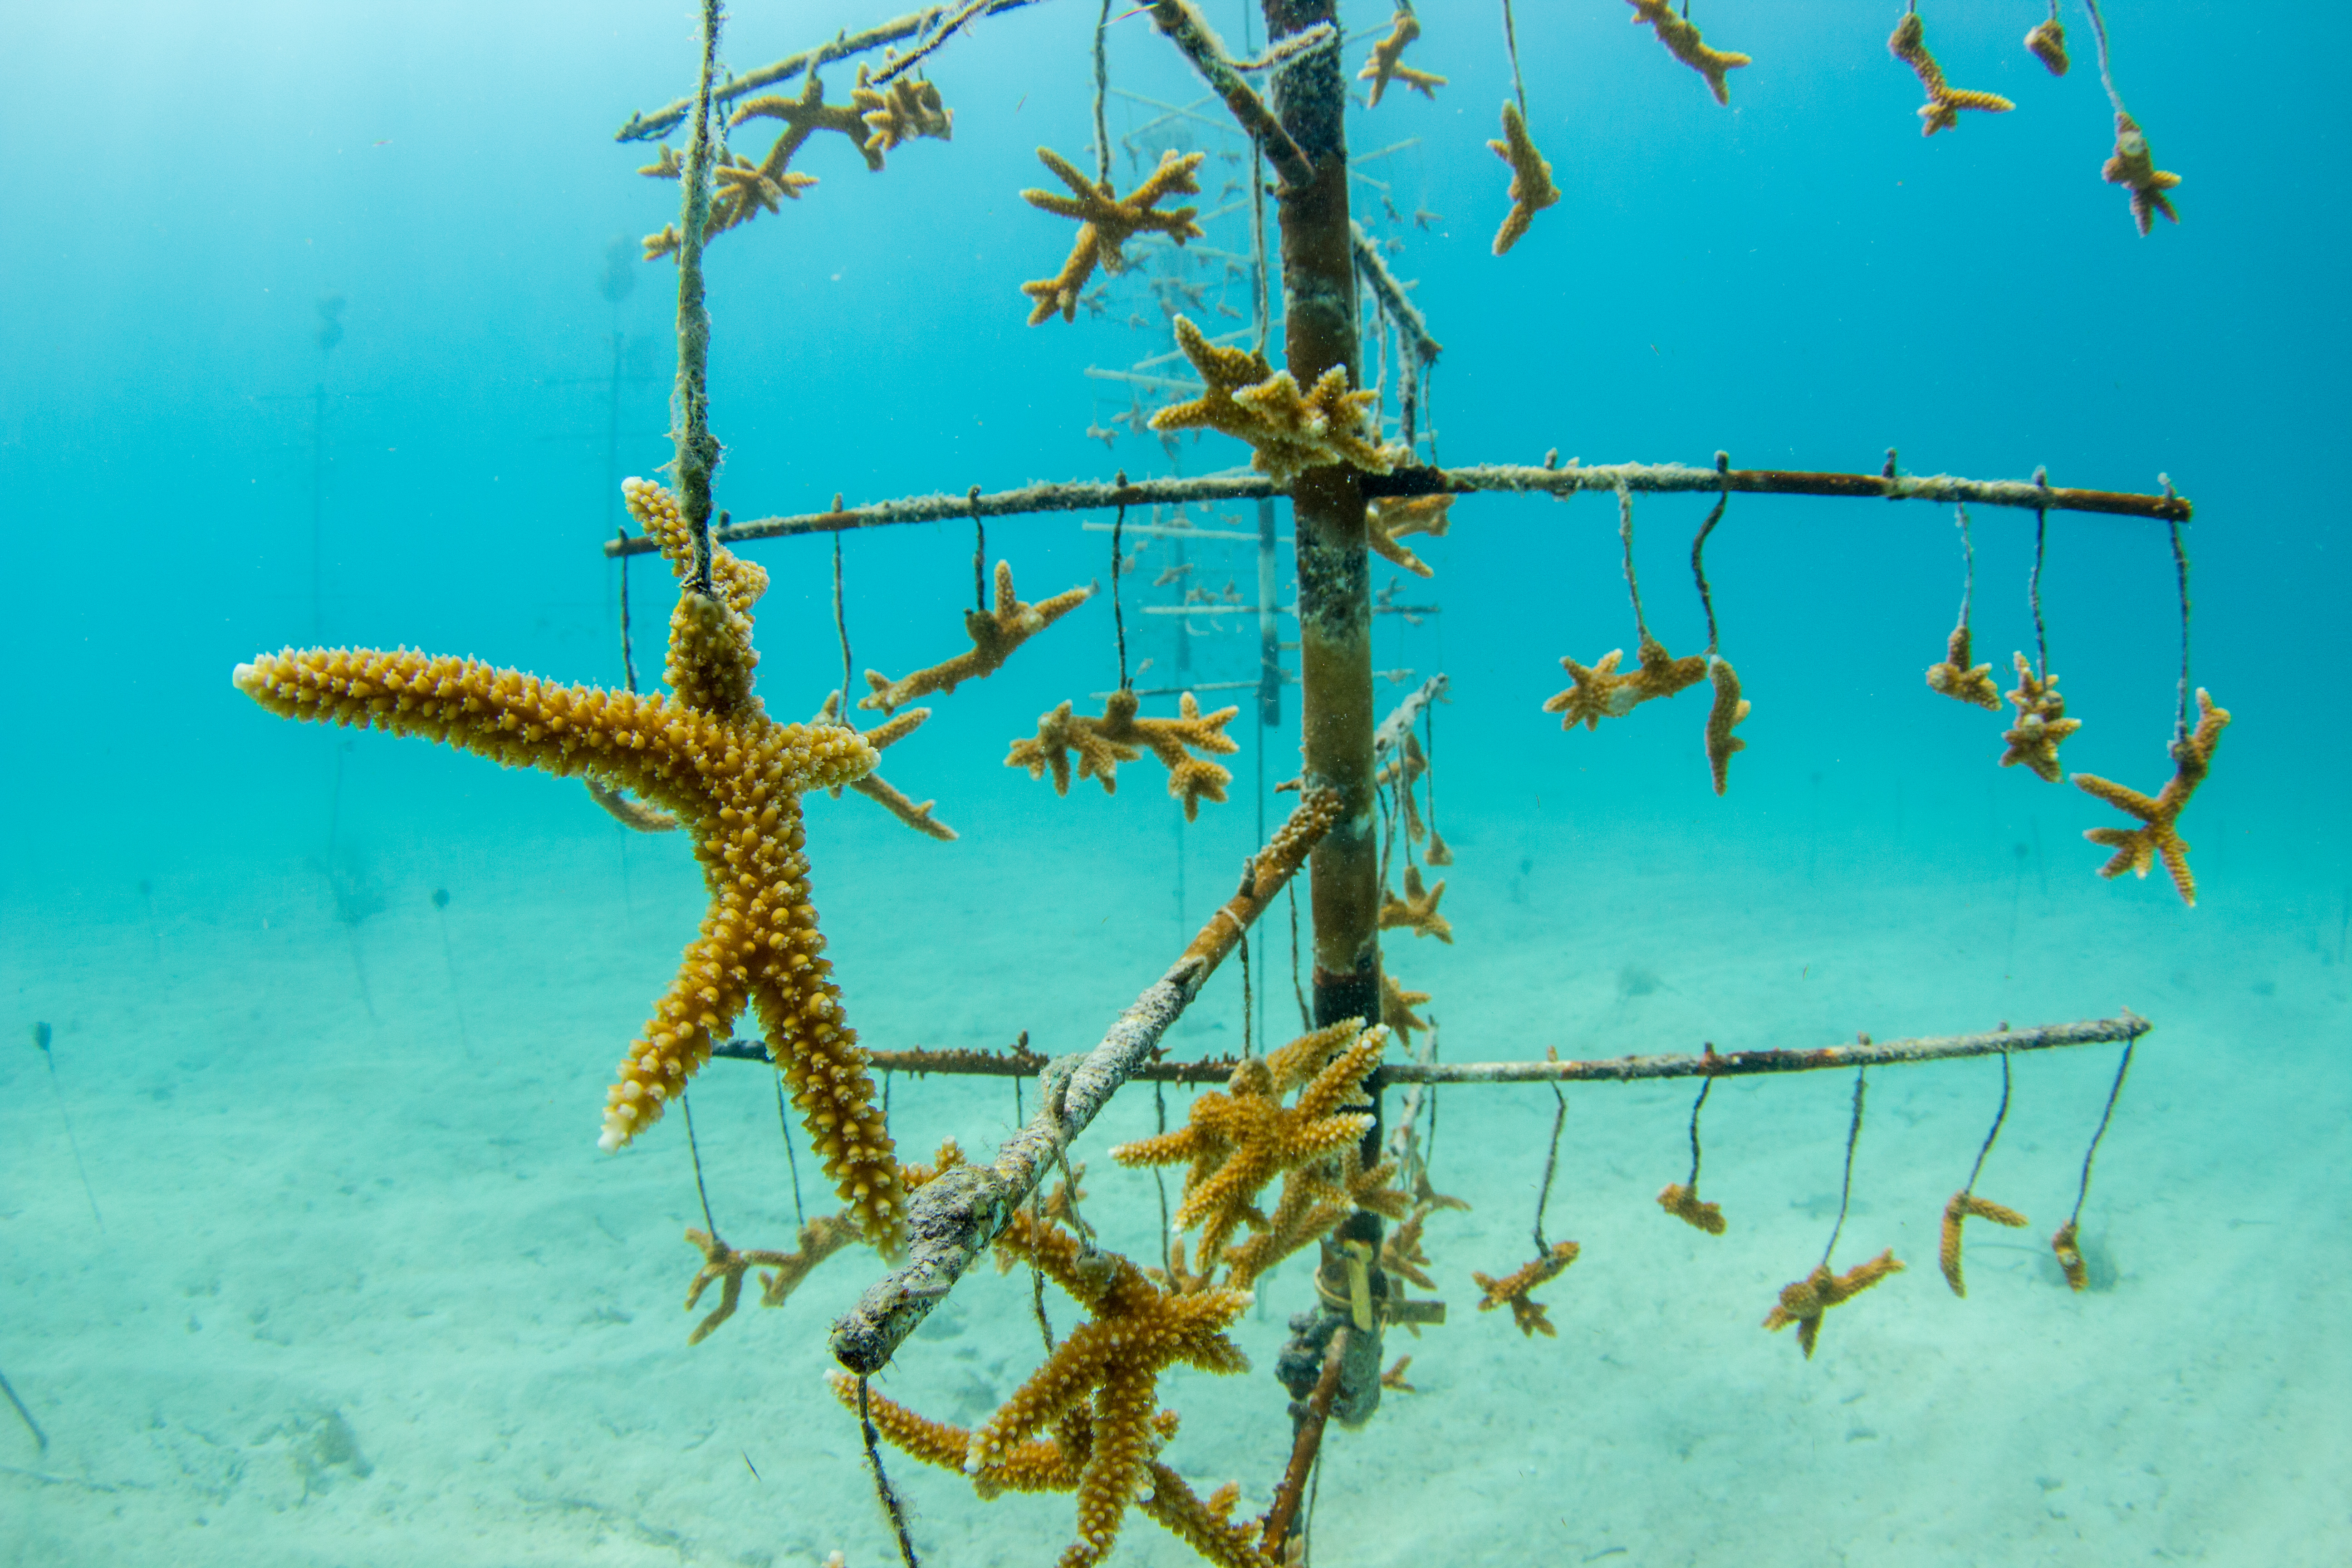 mote led initiative will restore resilient corals across 130 acres